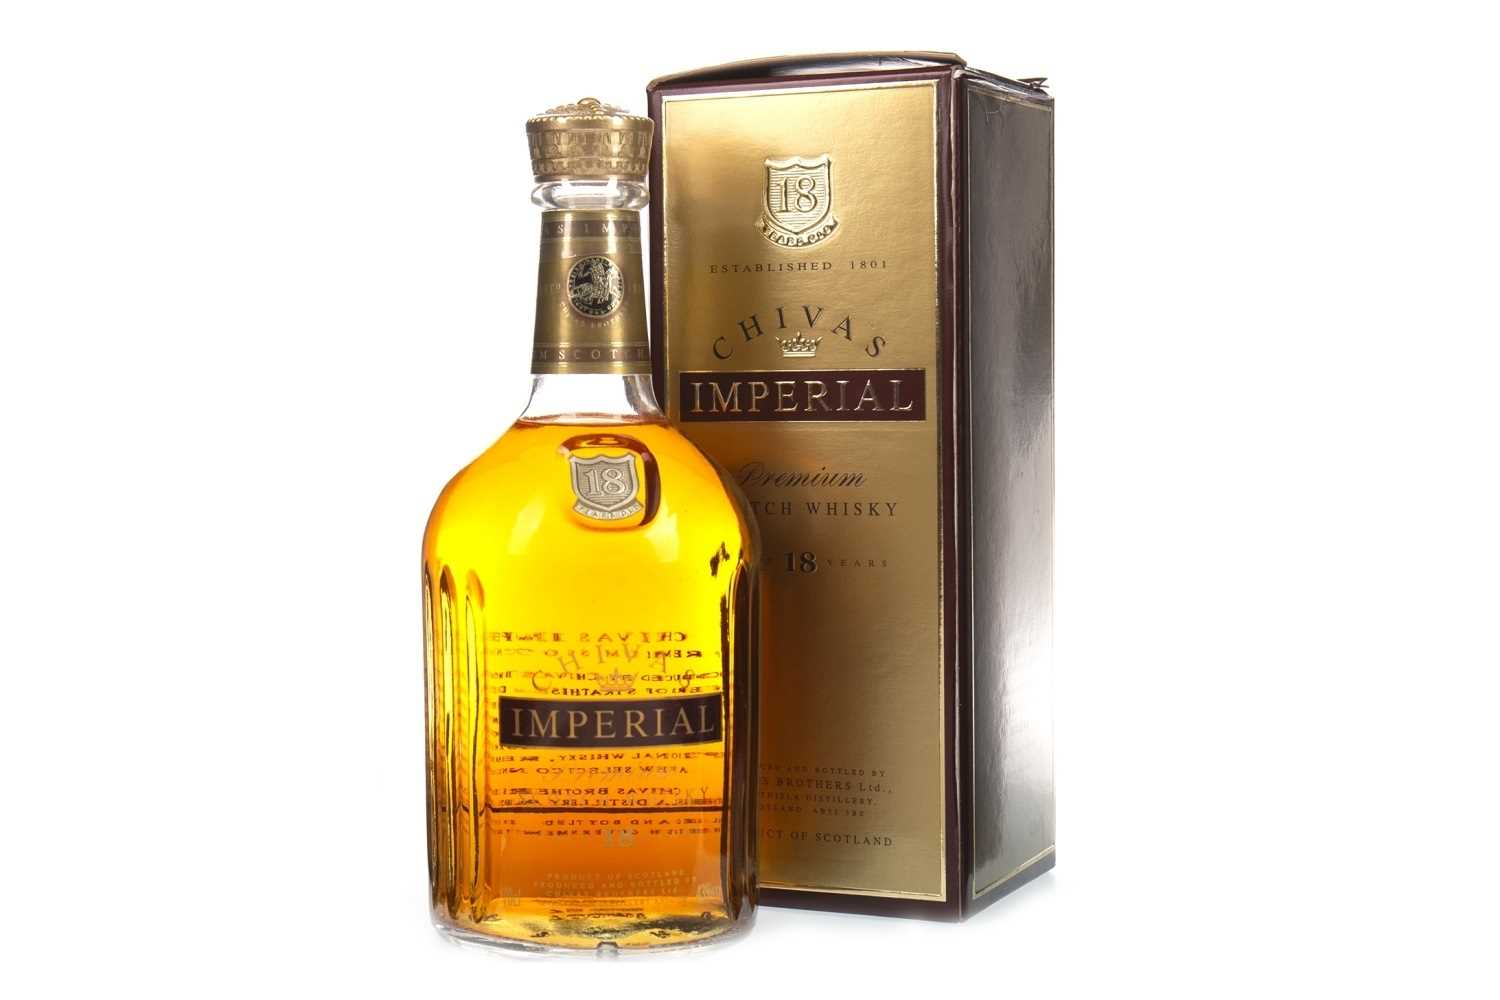 Lot 406 - CHIVAS IMPERIAL AGED 18 YEARS